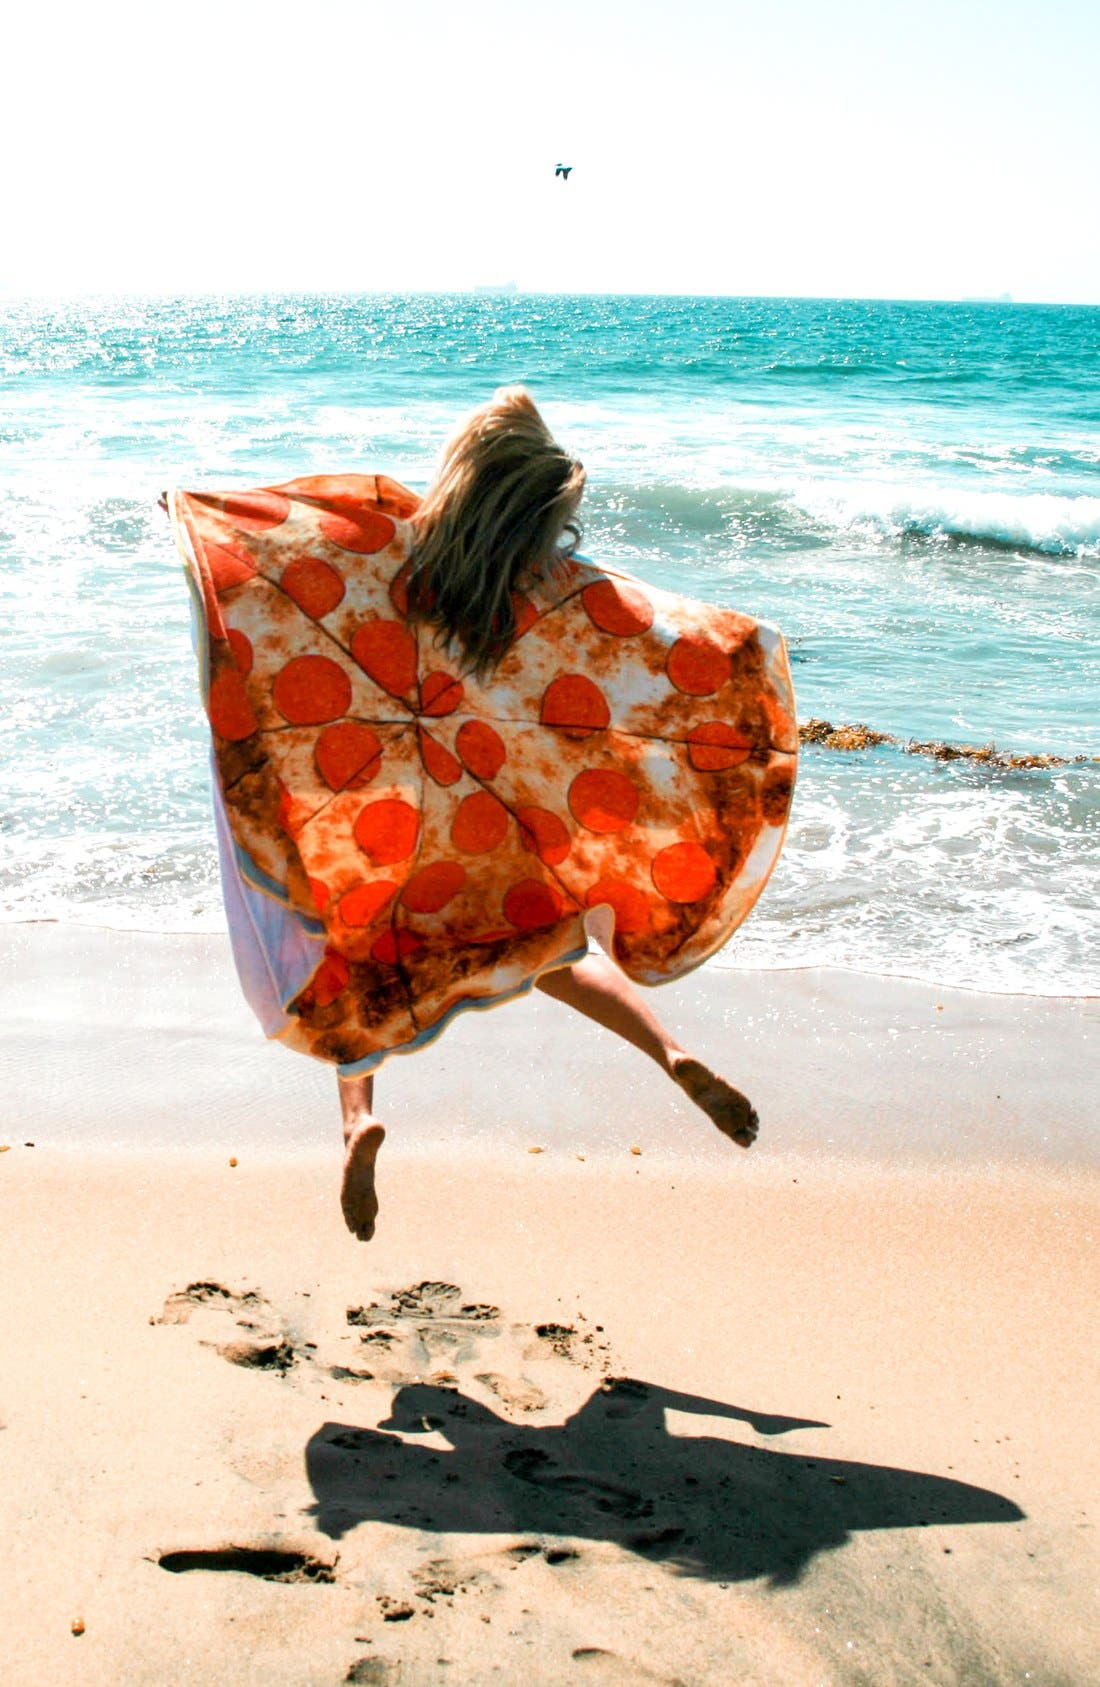 Alternate Image 3  - Round Towel Co. Pizza Round Beach Towel